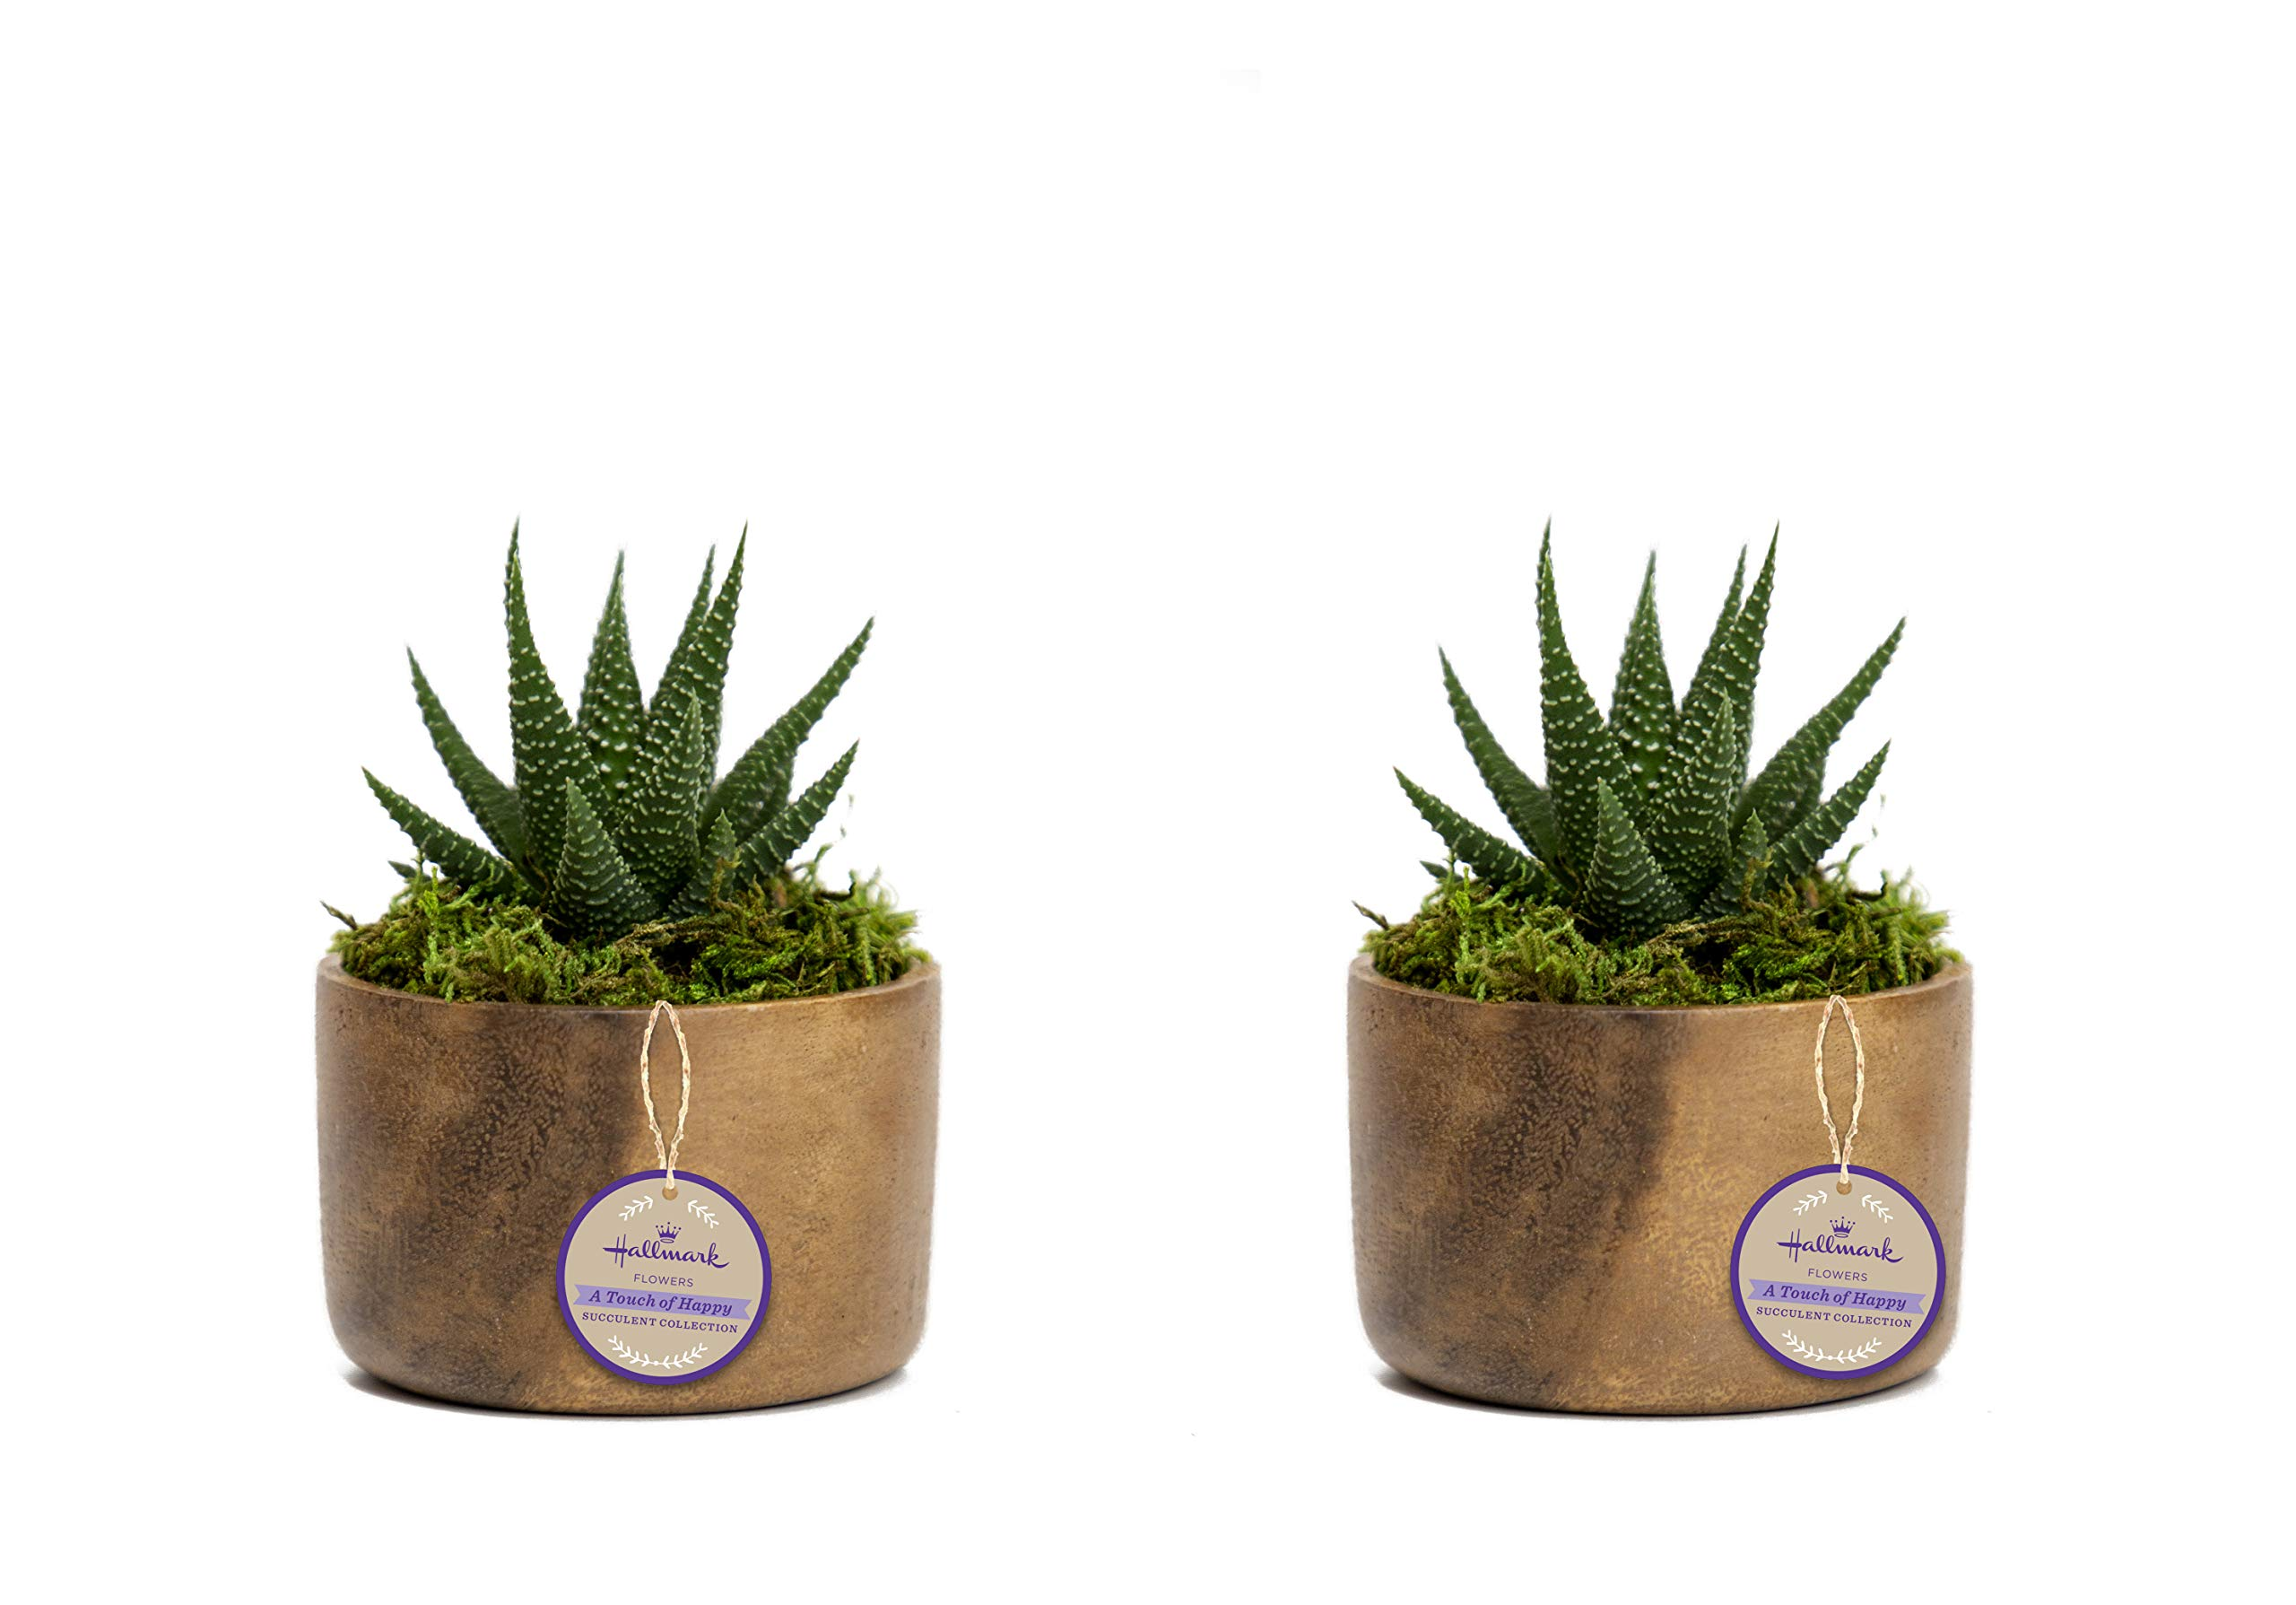 Live Succulents in Wooden Luxe Containers (Set of 2), From Hallmark Flowers